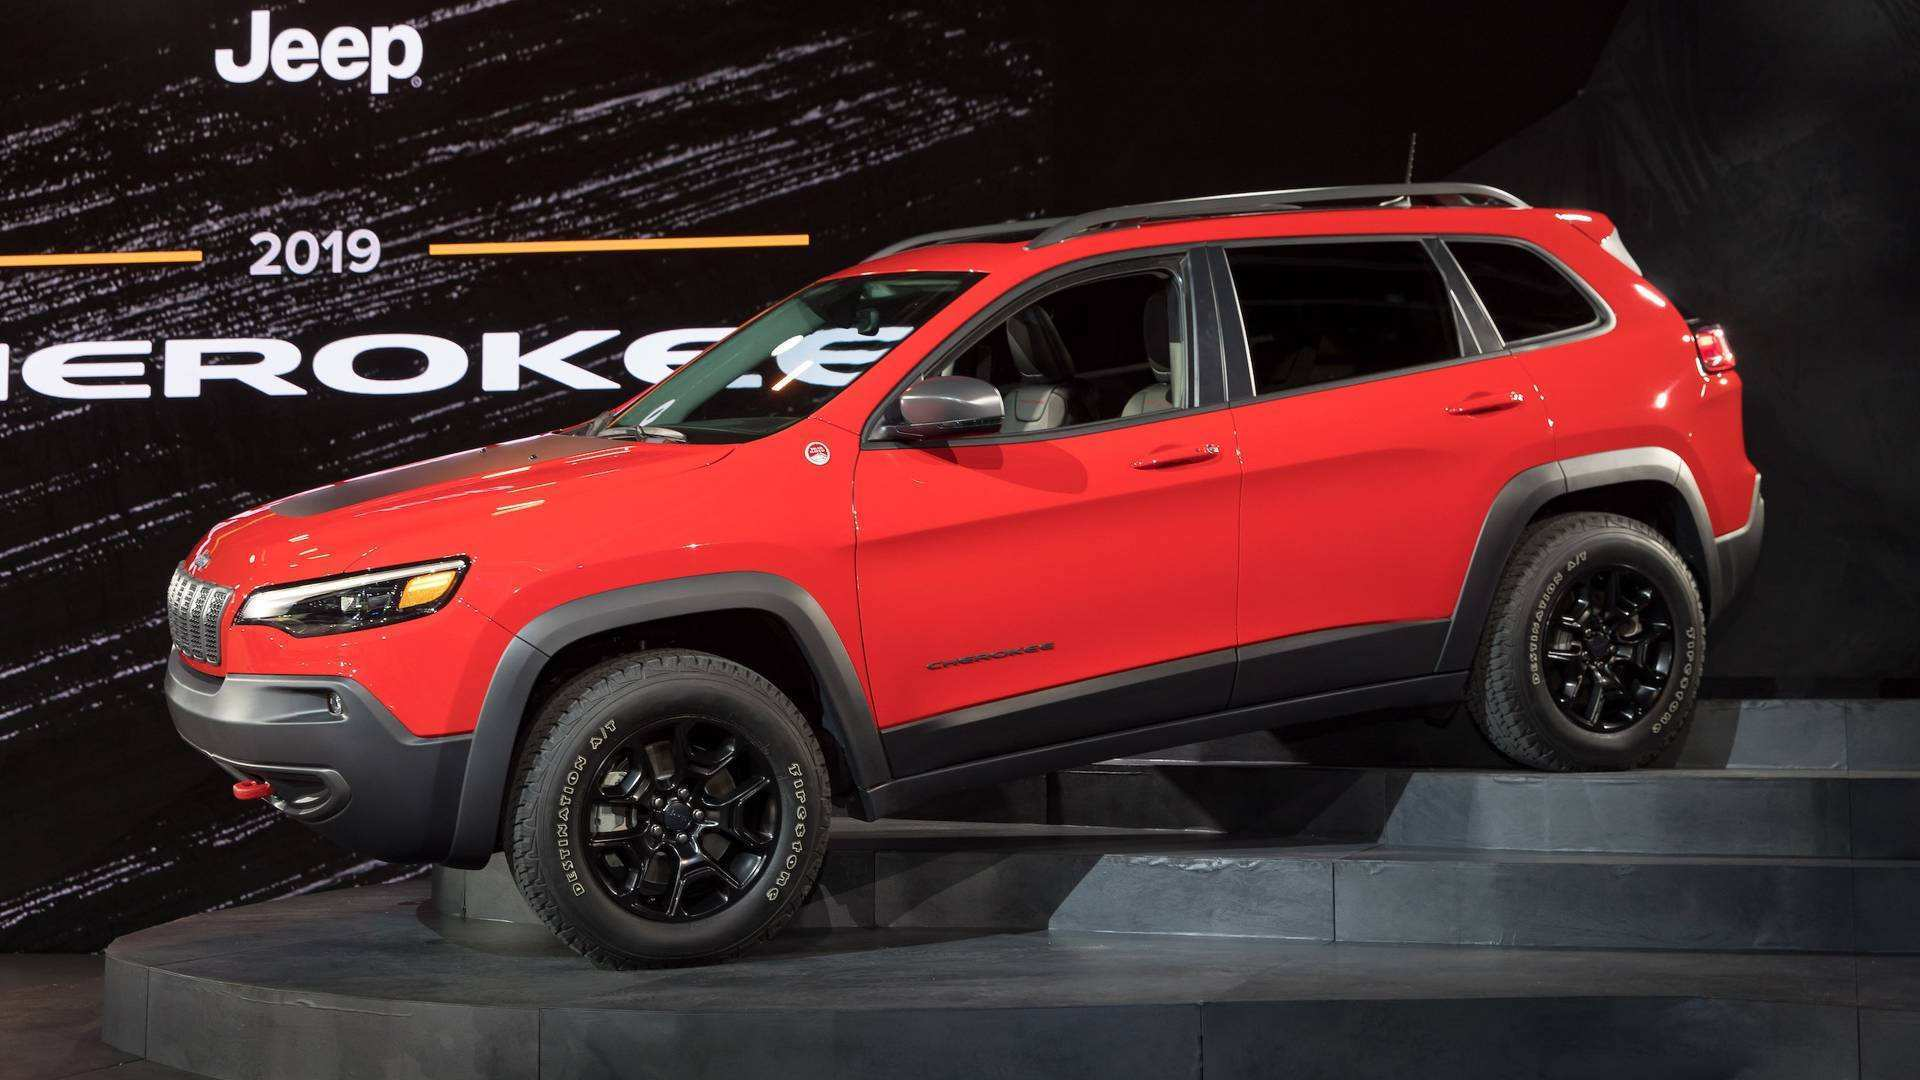 48 Great 2019 Jeep Cherokee Kl Overview with 2019 Jeep Cherokee Kl